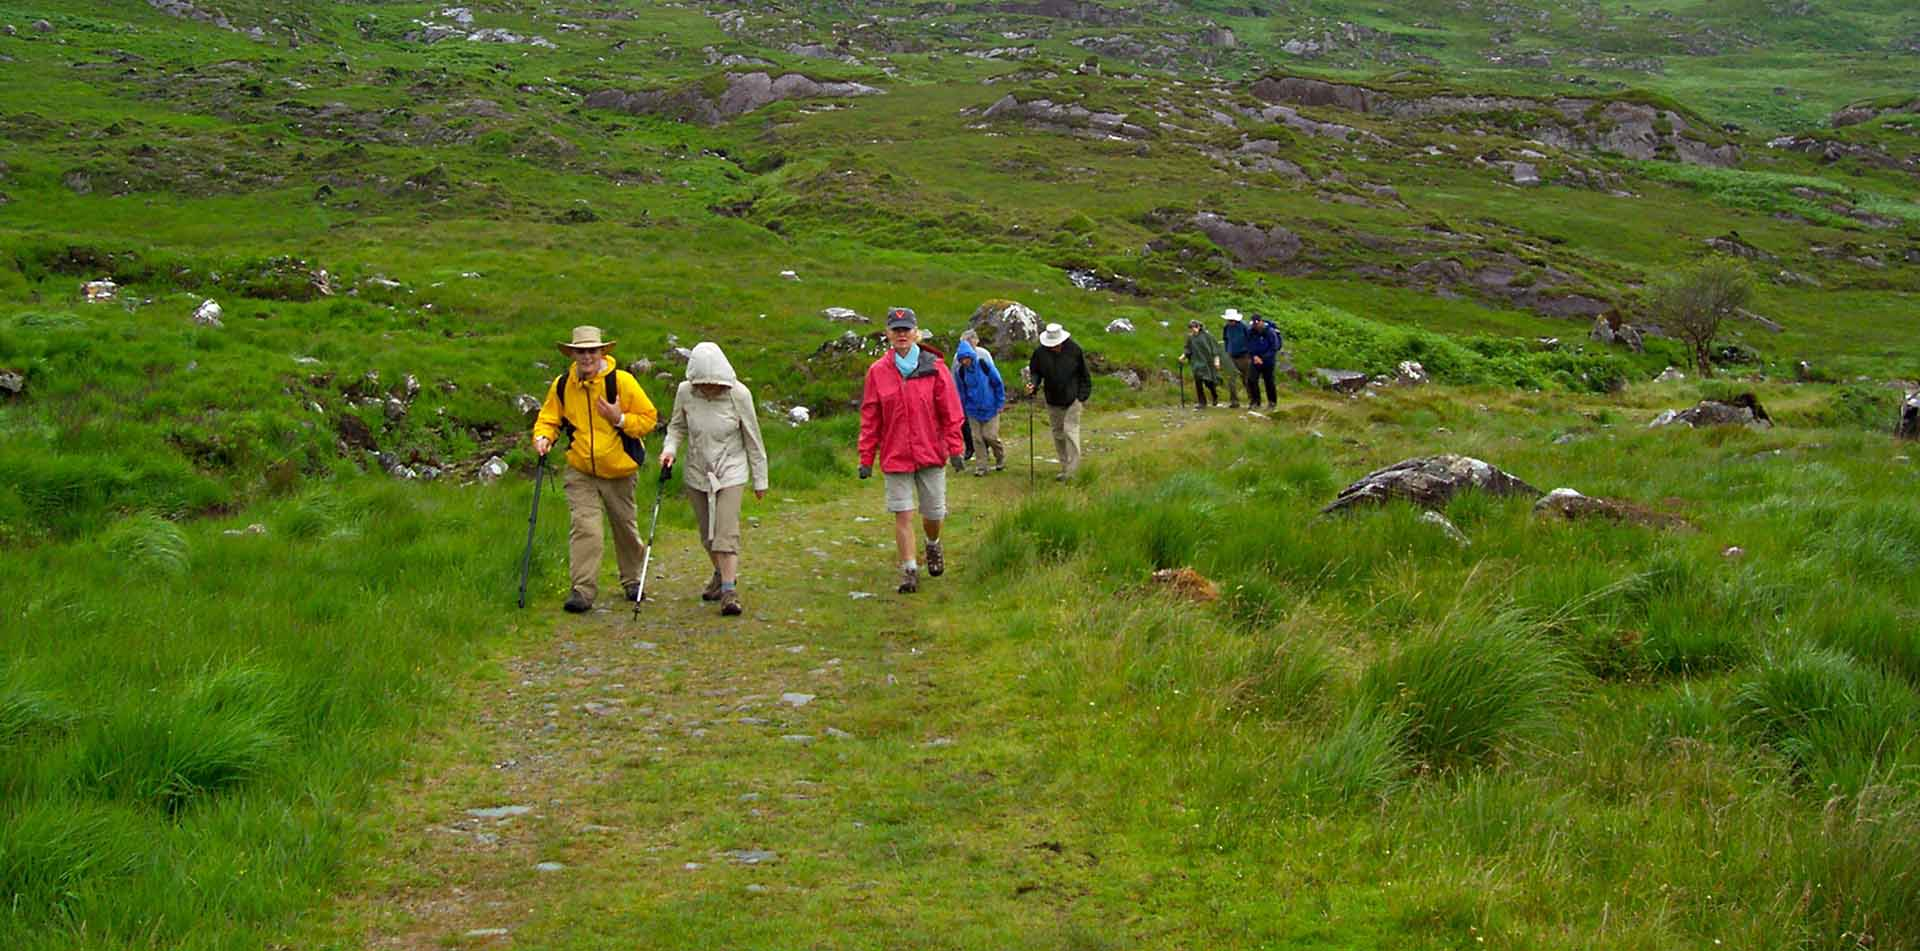 People Walking in Ireland